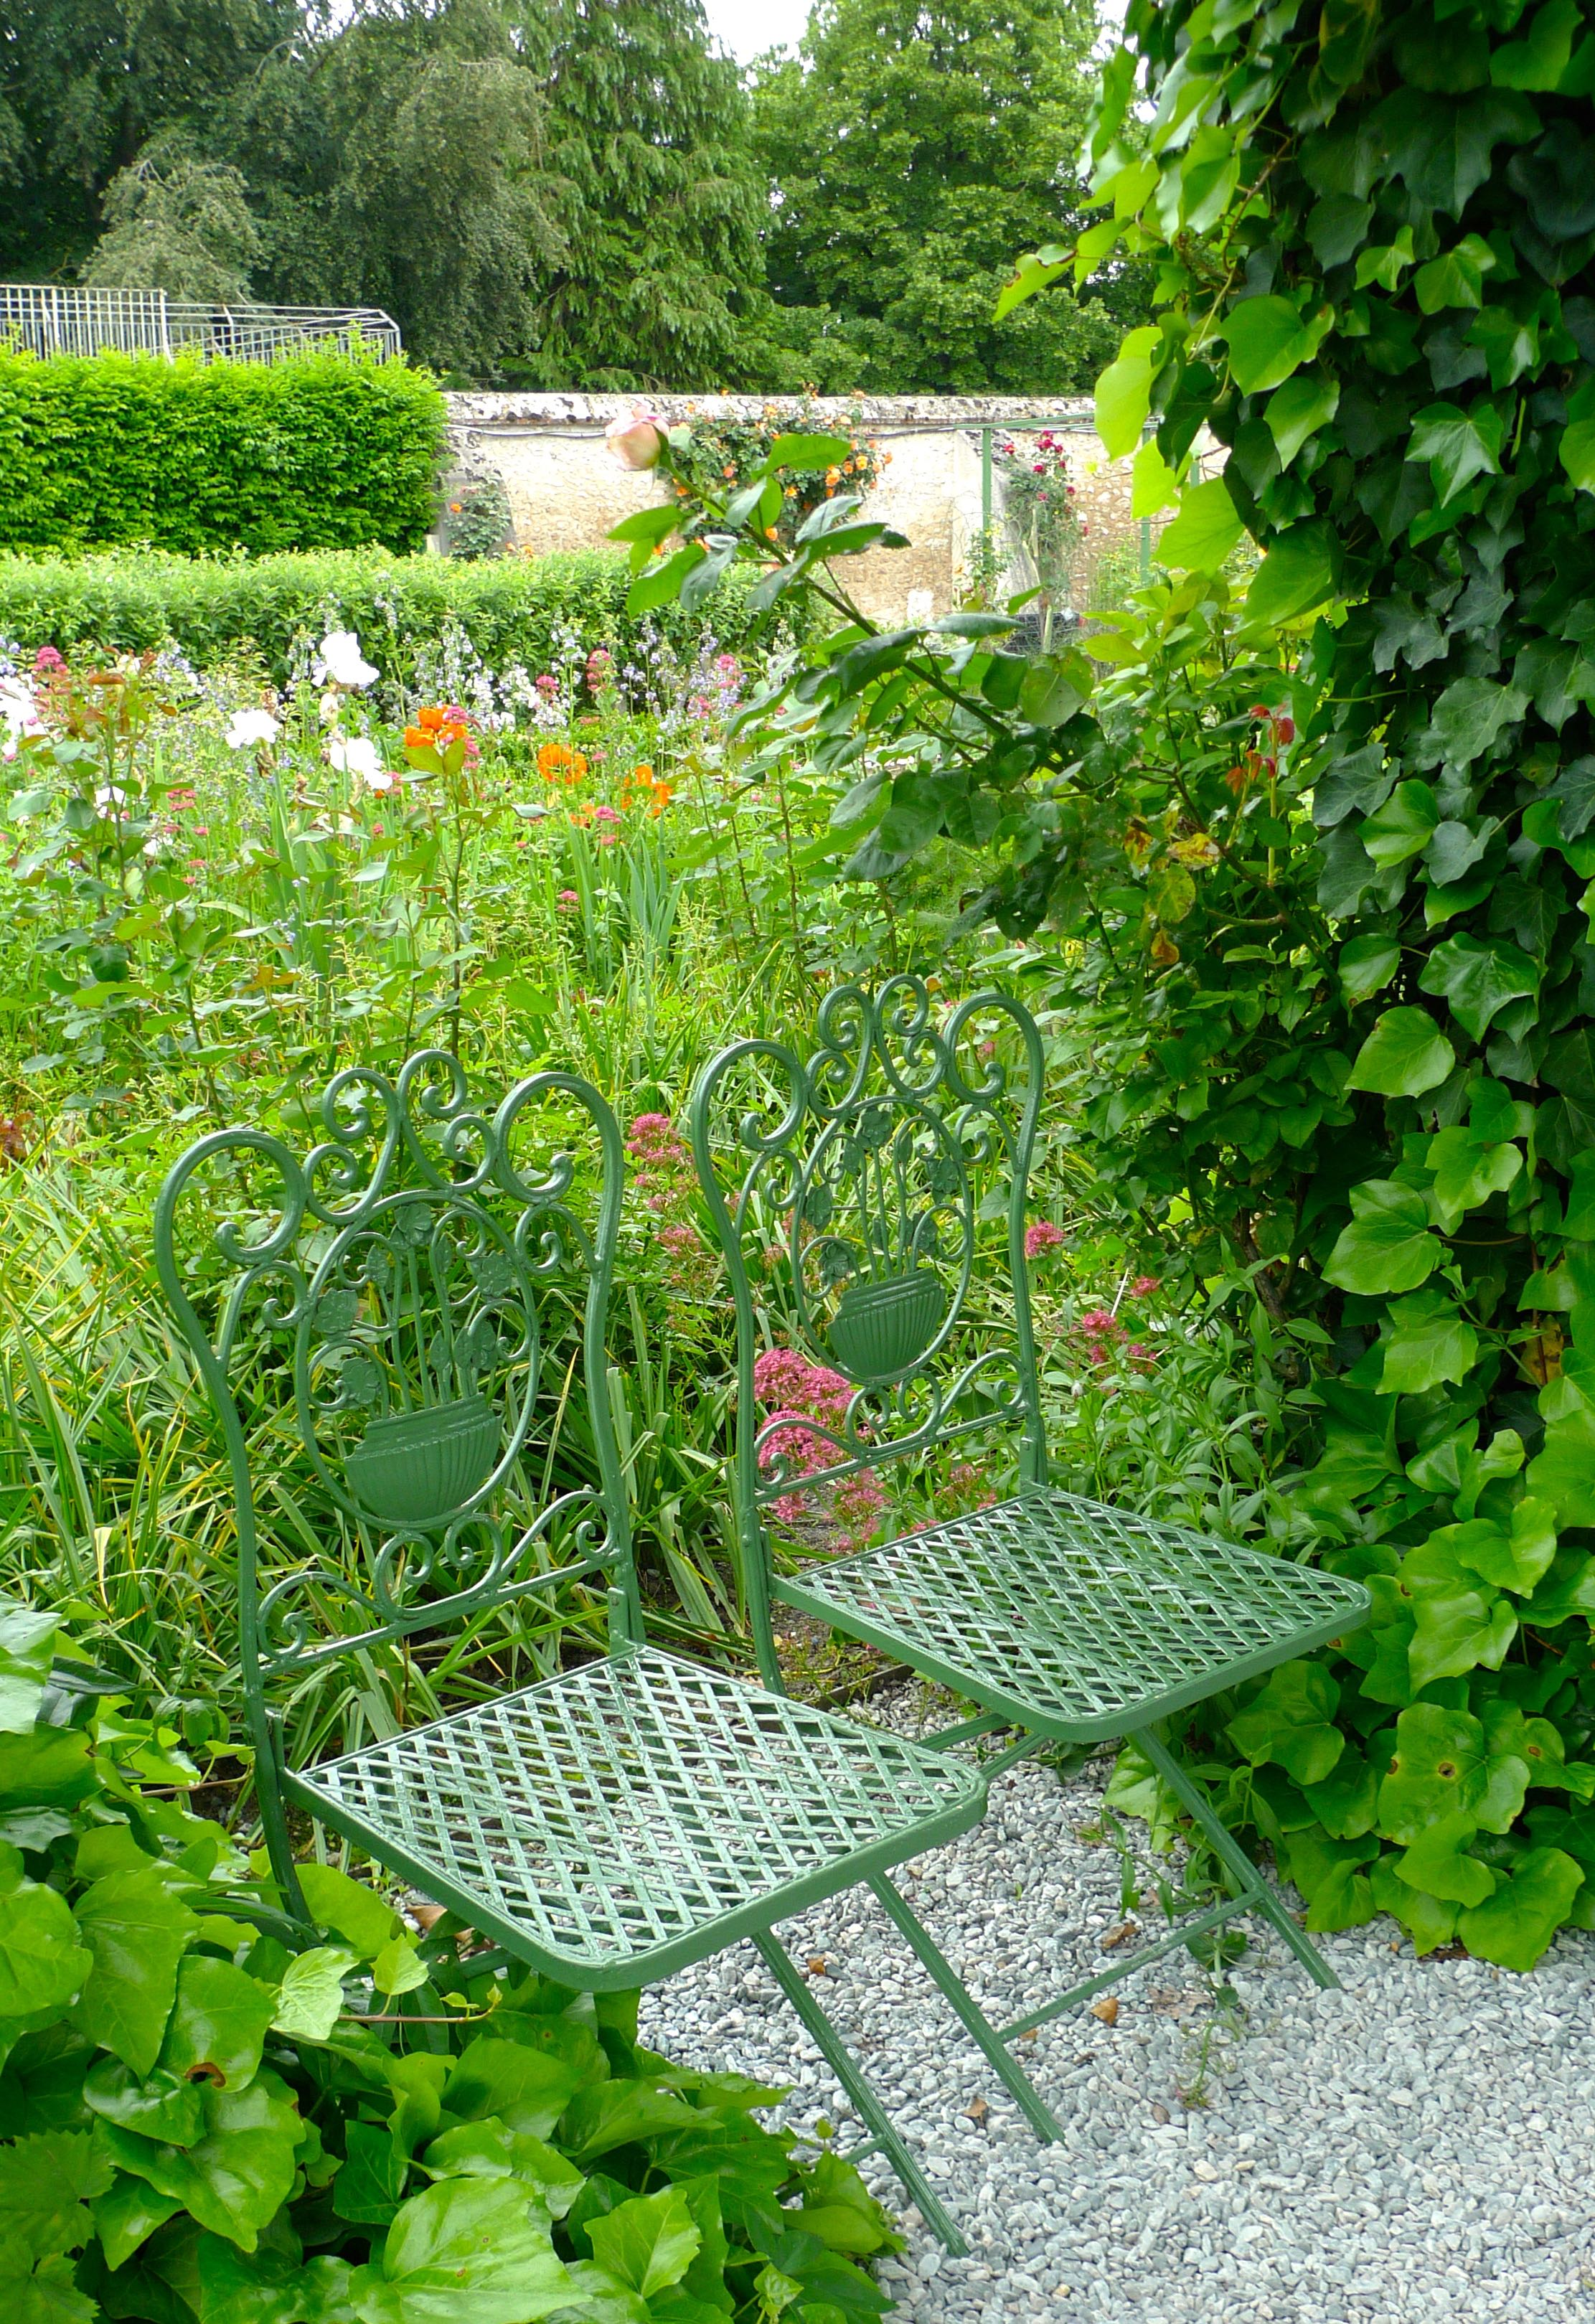 A place to sit and enjoy the view over the jardin potager at Cheverny